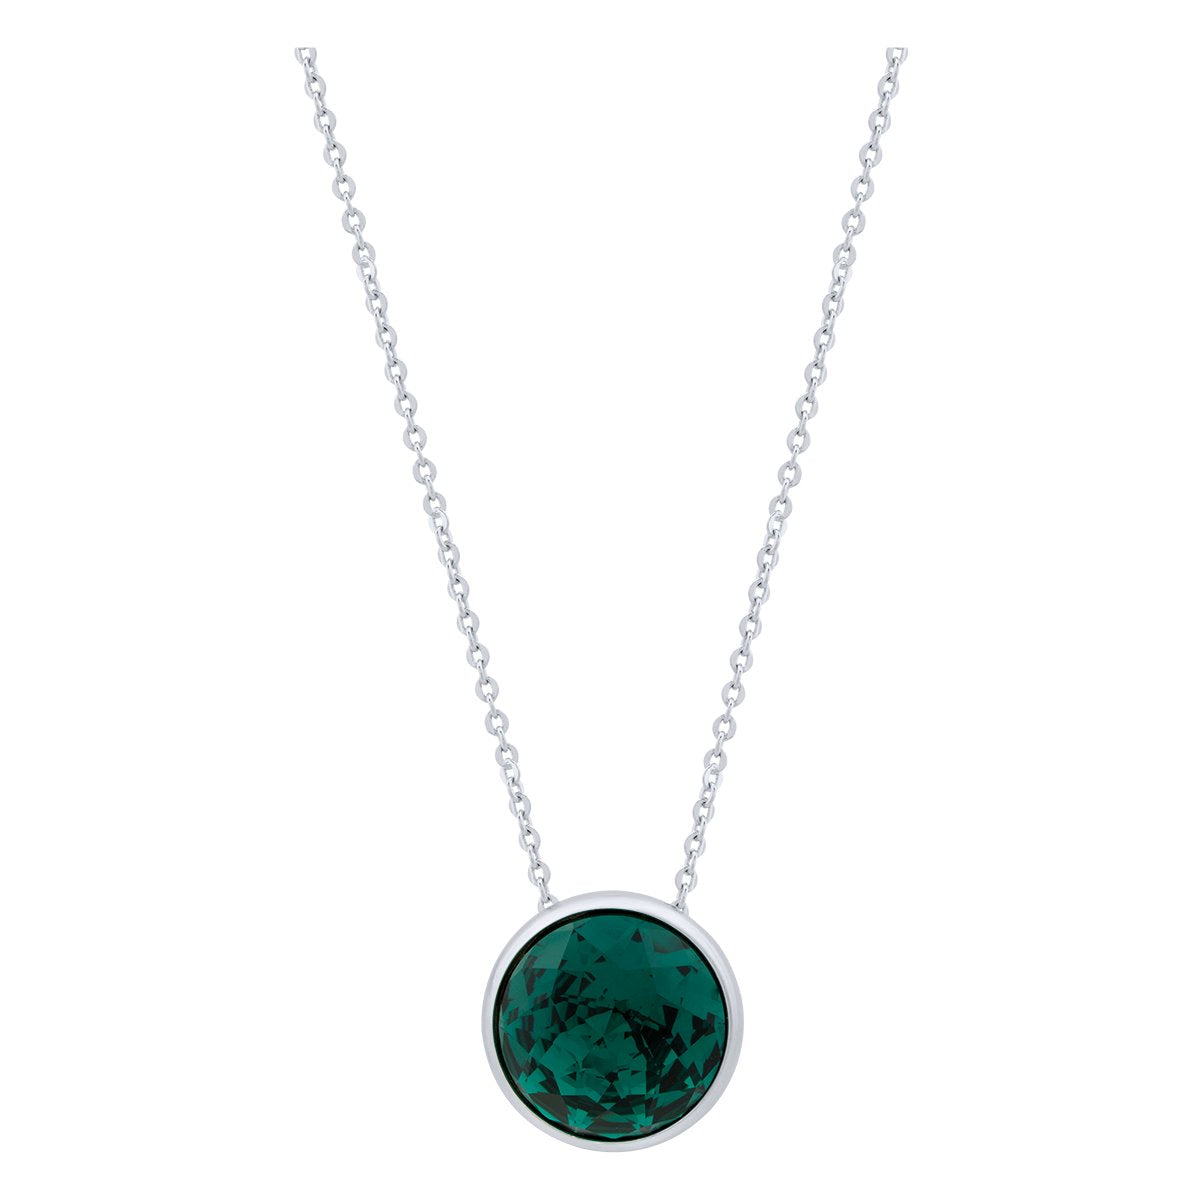 Elysees Necklace Silver Emerald JOY OF SPARKLE FOREVER CRYSTALS